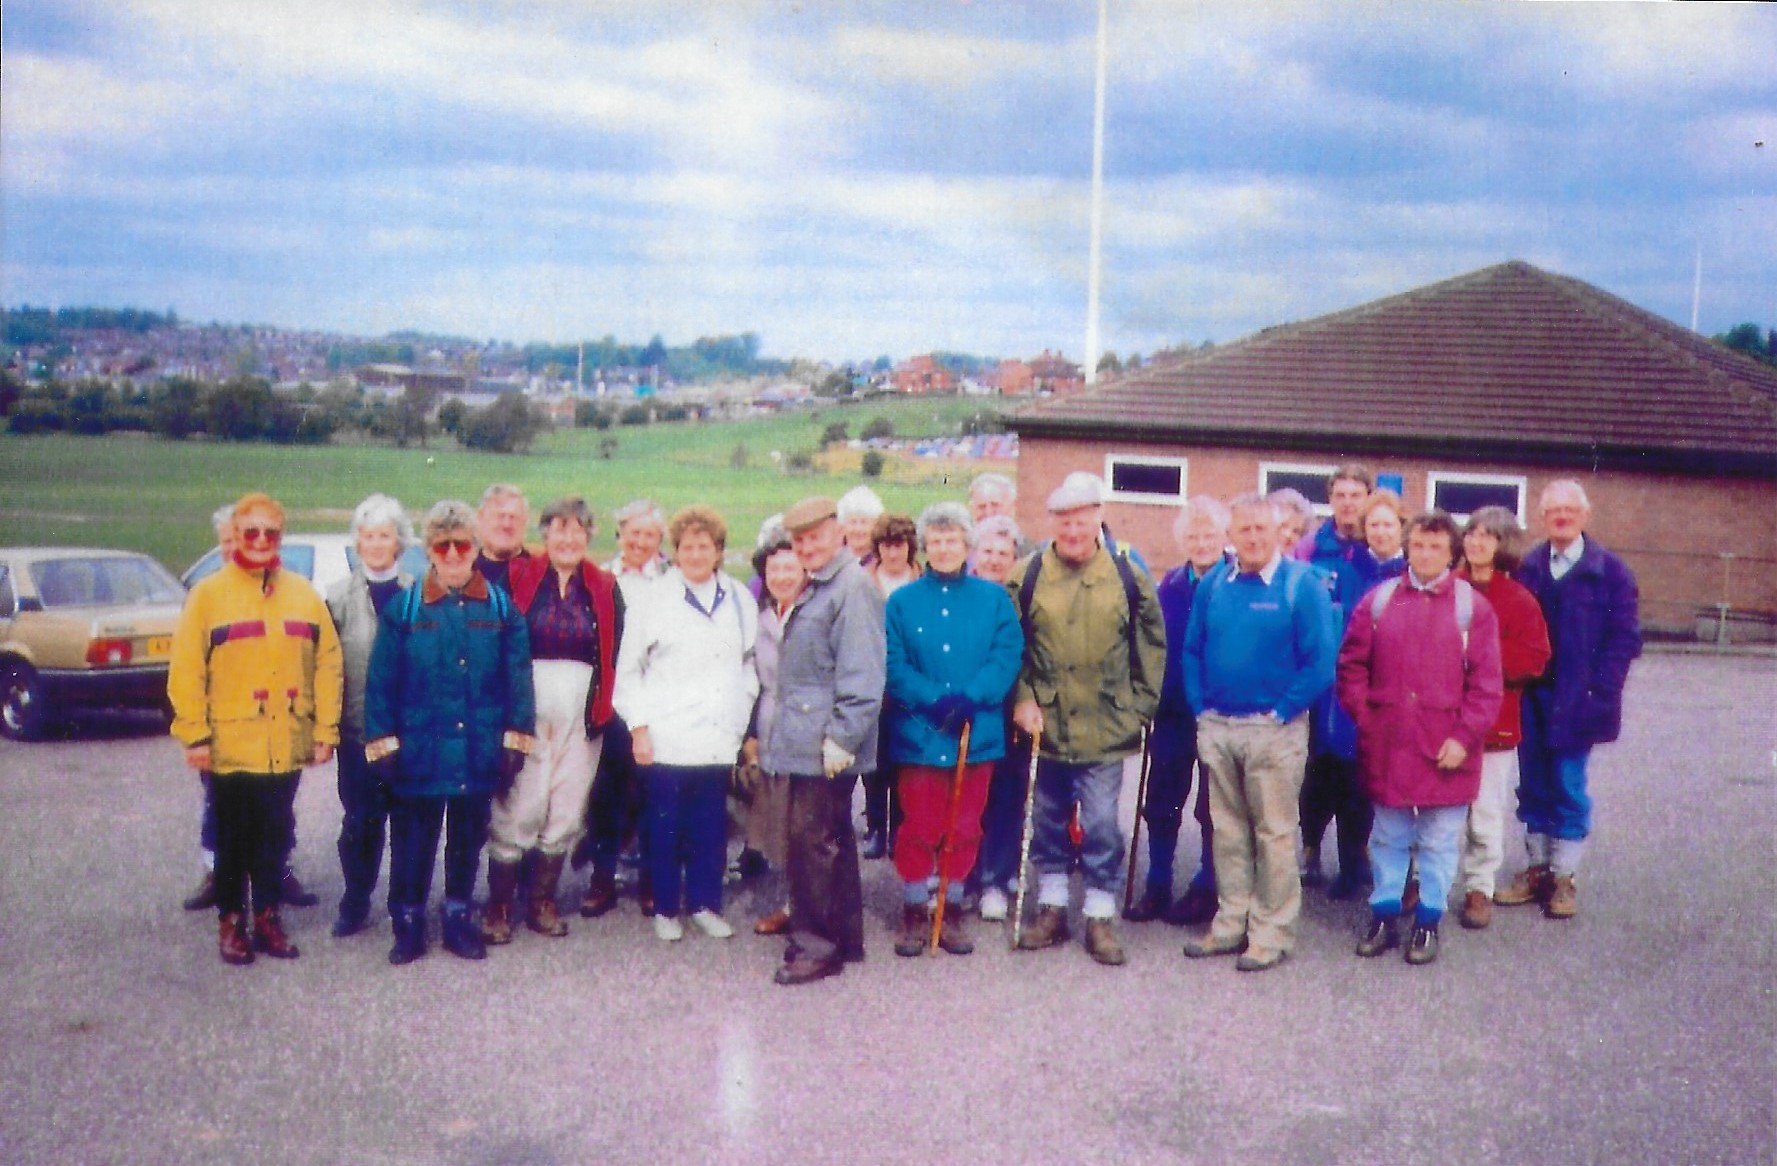 1st U3A Walk on 11th May 1995